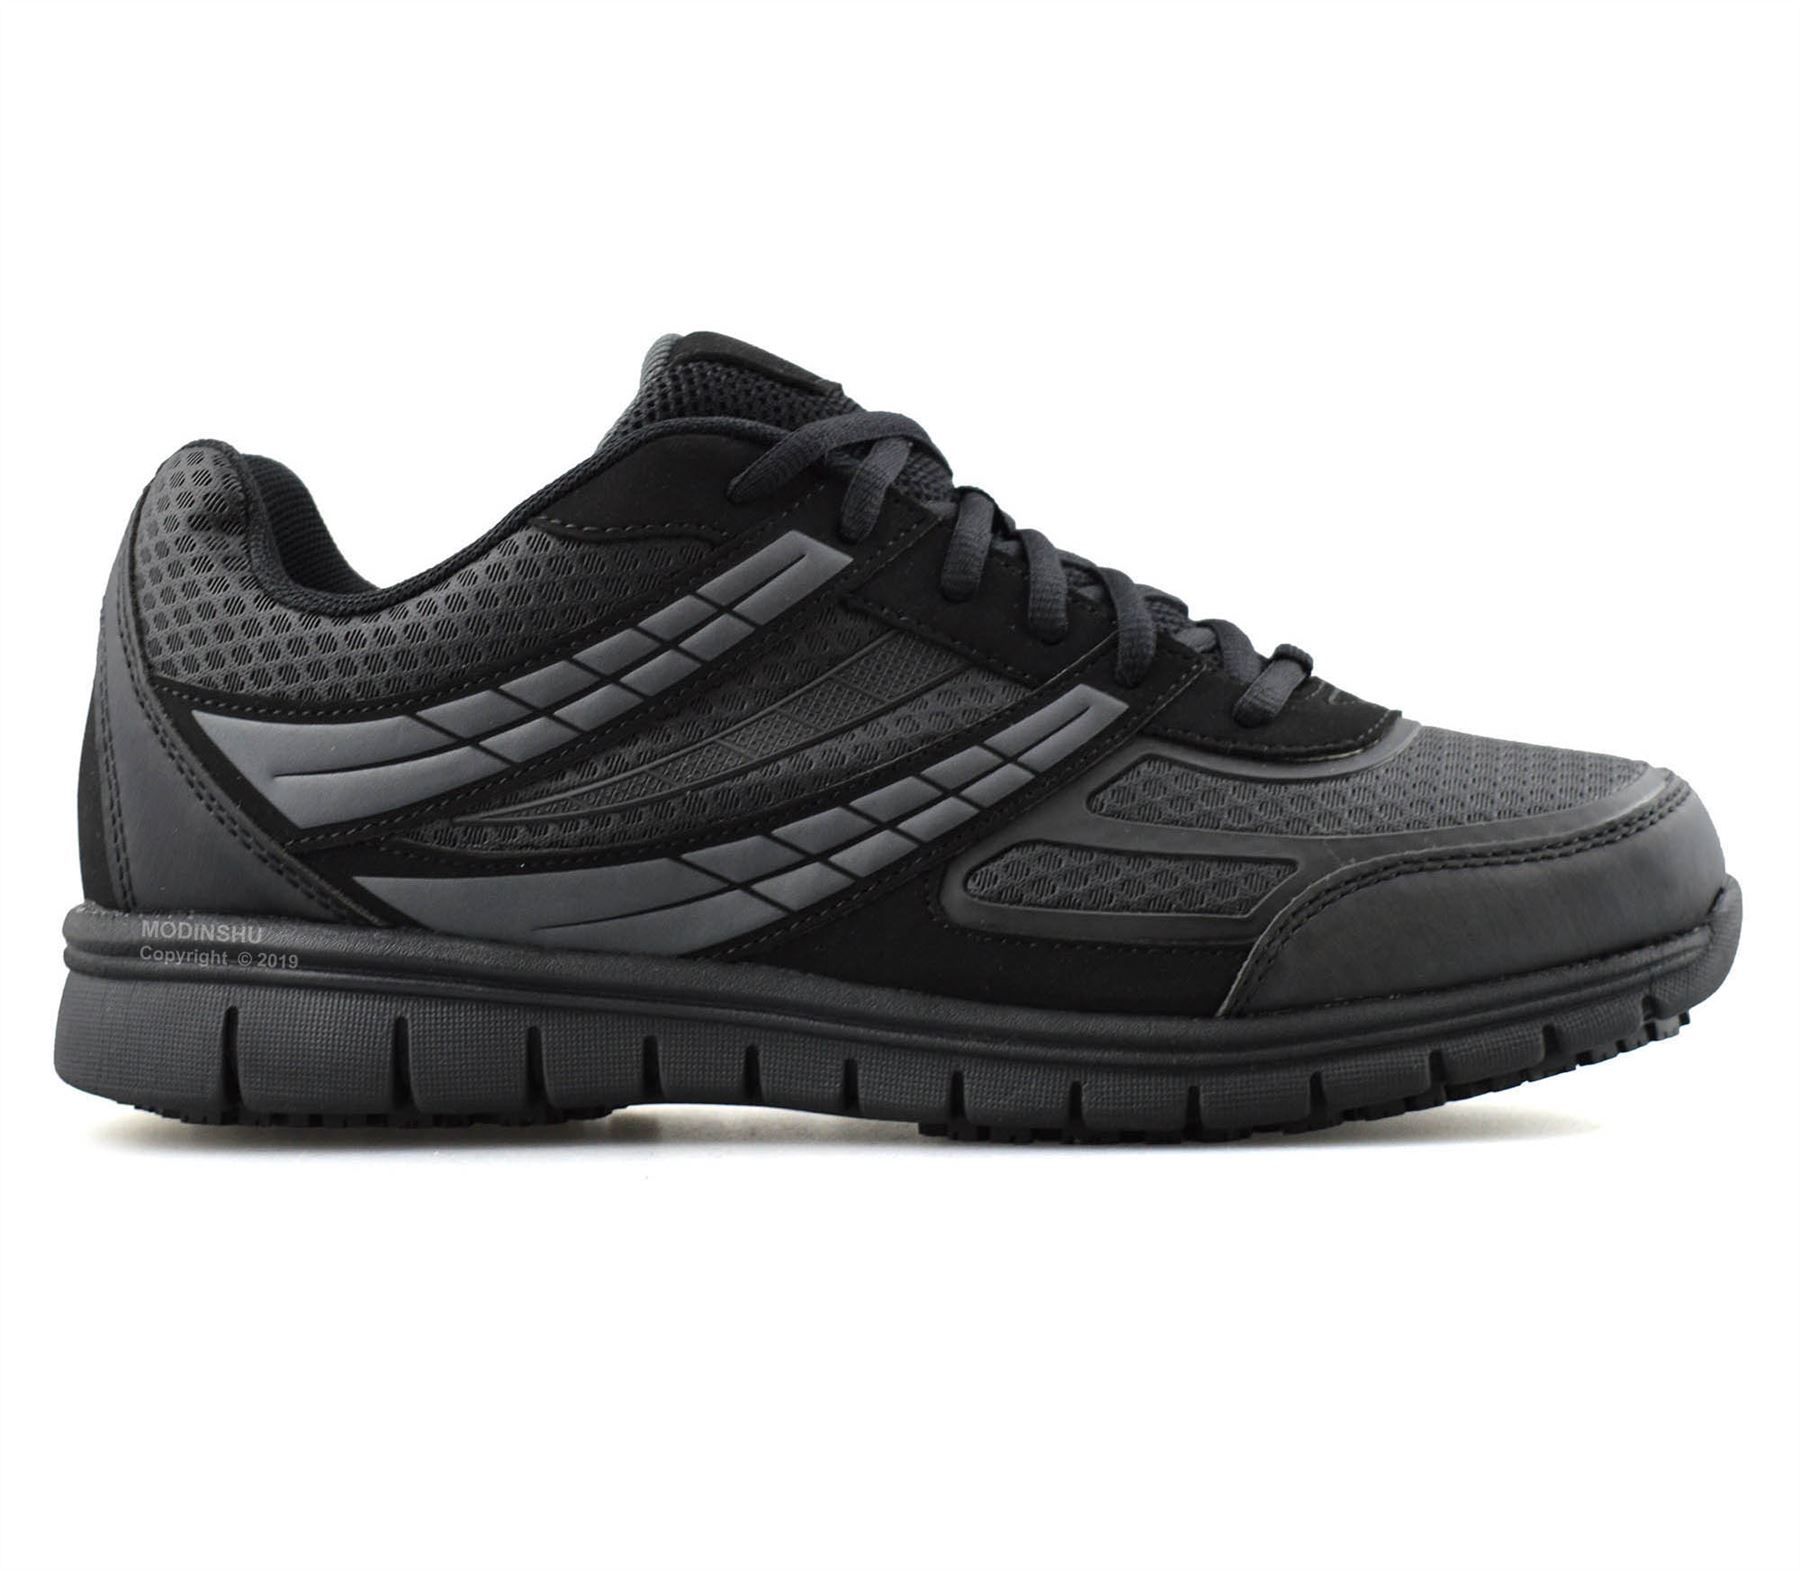 Mens-Casual-Lace-Up-Non-Slip-Memory-Foam-Walking-Hiking-Work-Trainers-Shoes-Size thumbnail 11